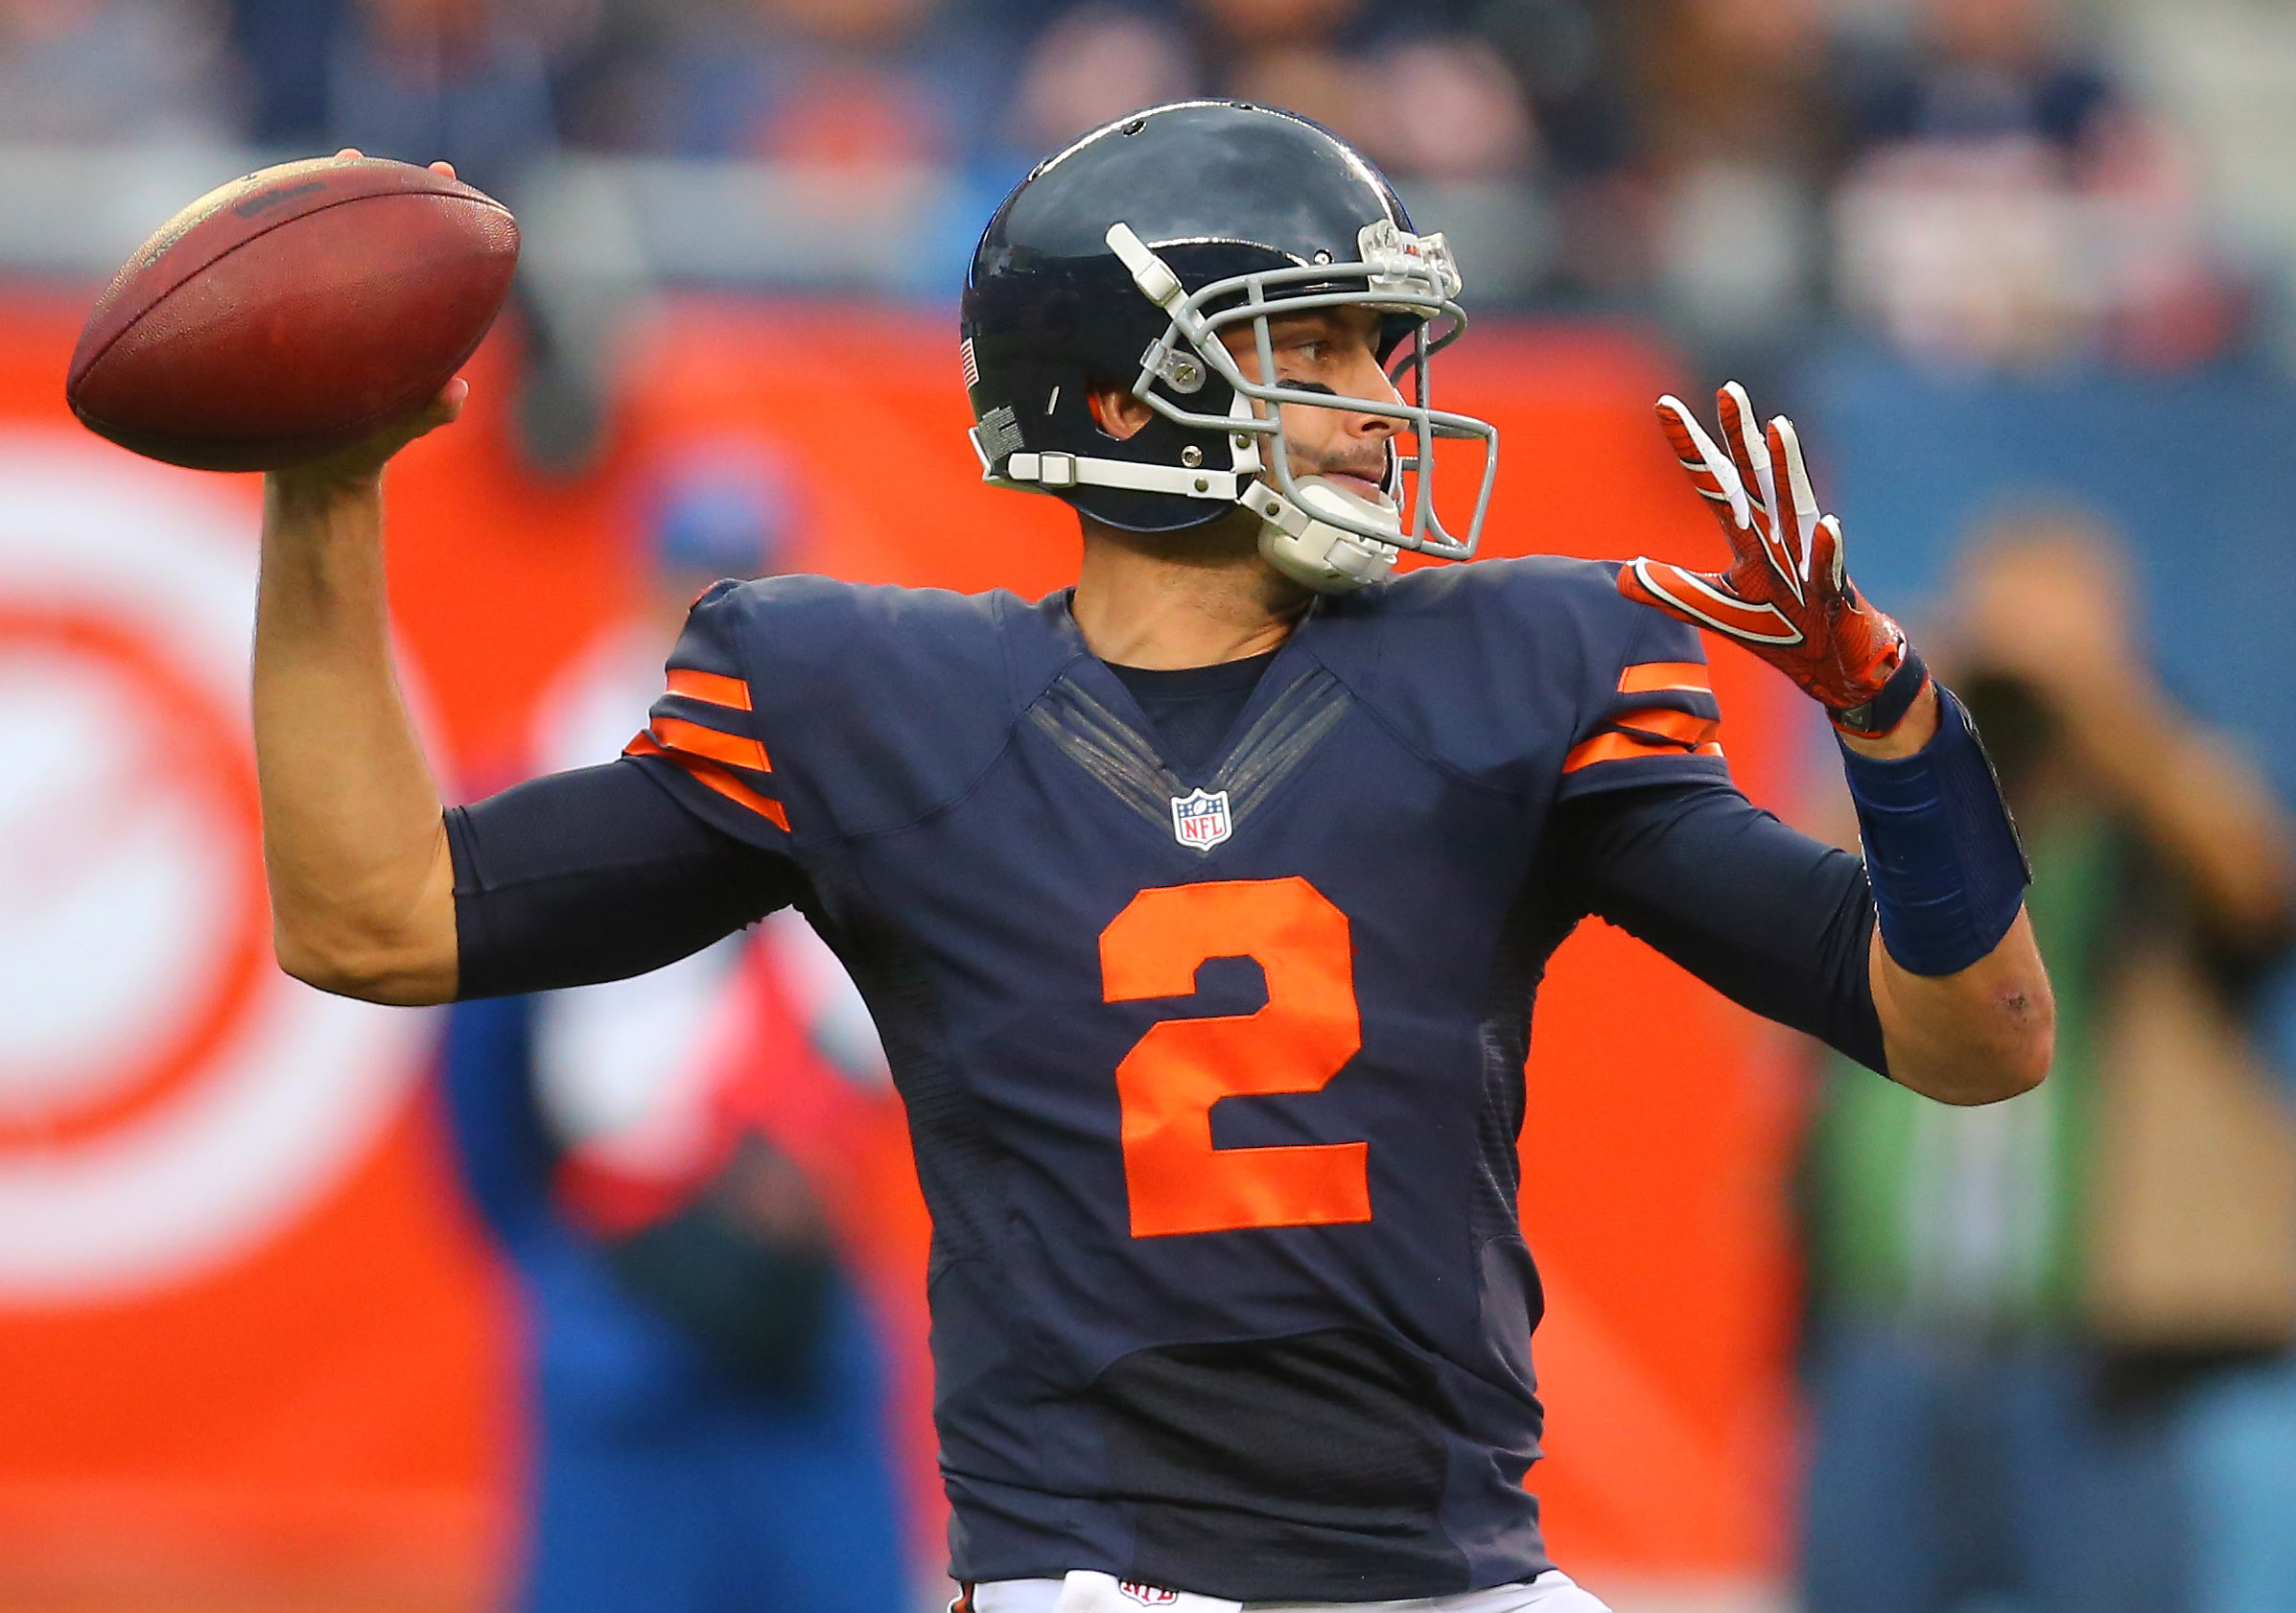 0c75d3a6dd7 Oct 2, 2016; Chicago, IL, USA; Chicago Bears quarterback Brian Hoyer (2)  throws a pass during the second half against the Detroit Lions at Soldier  Field.